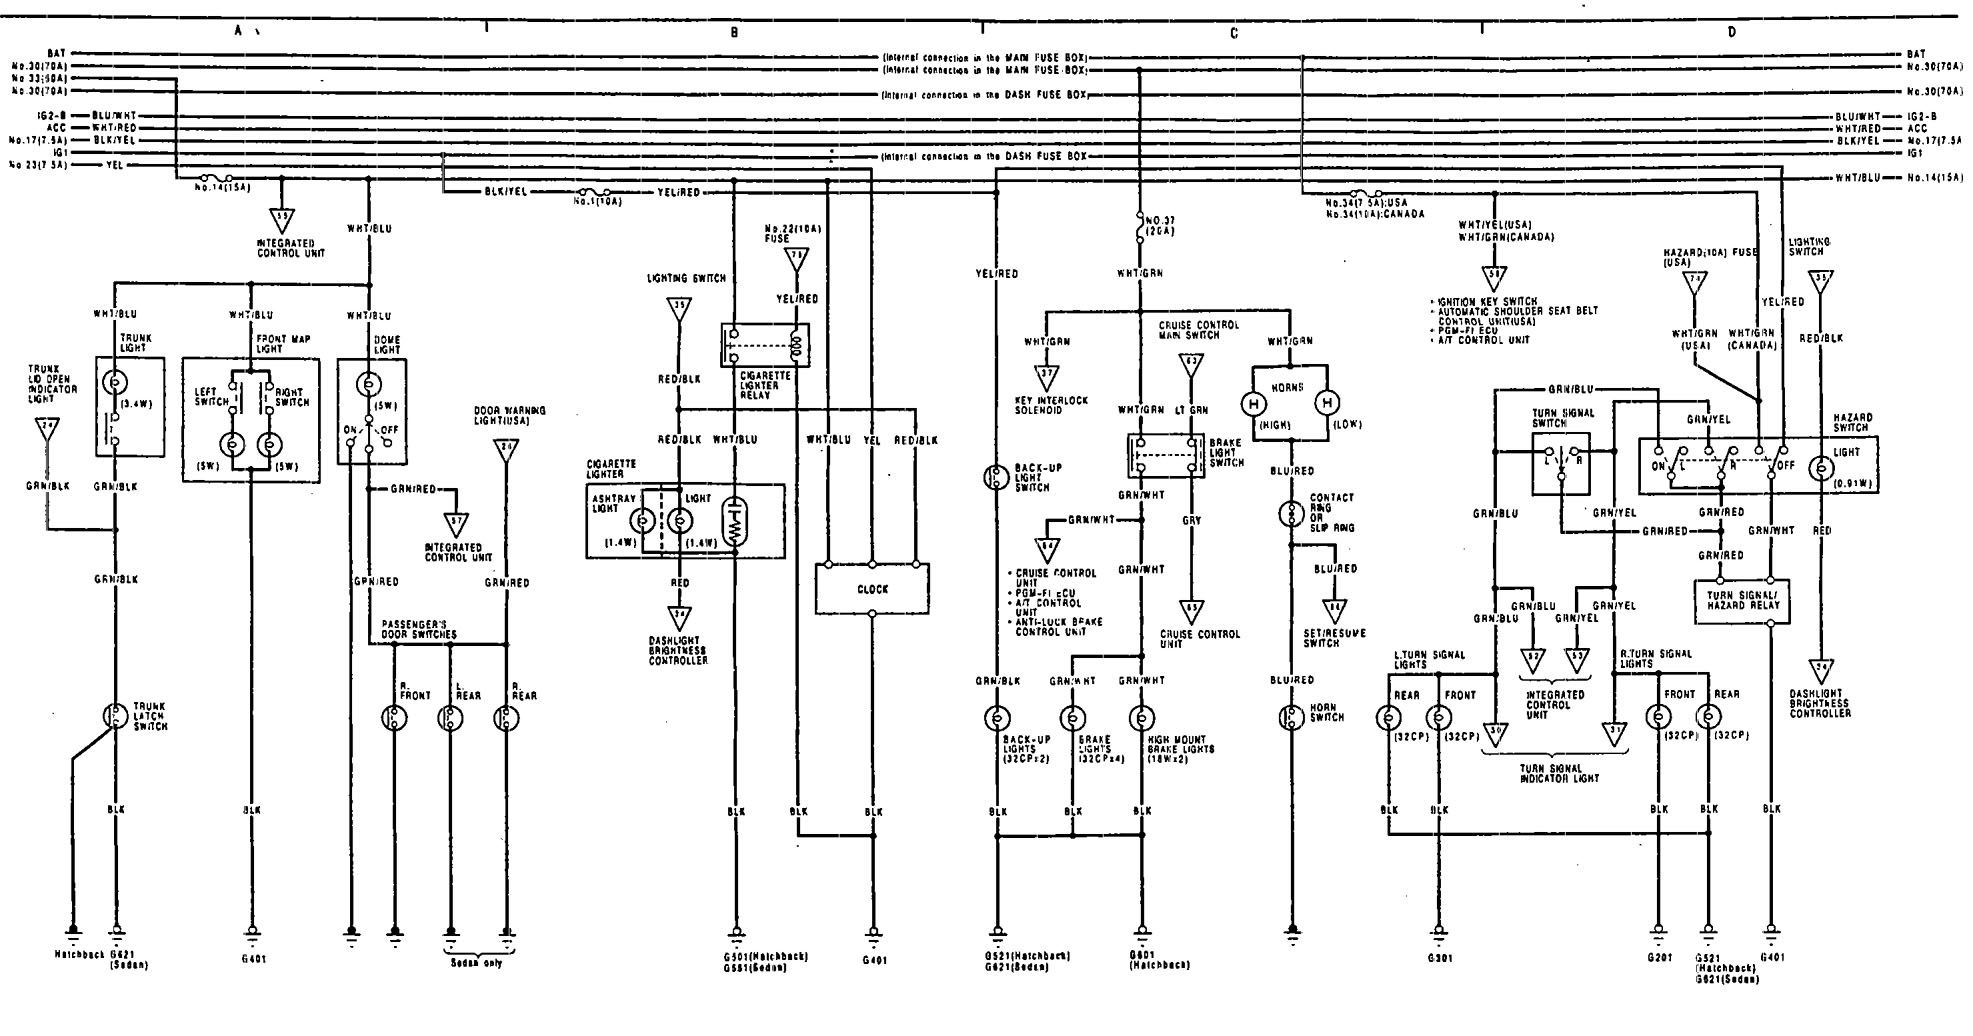 funky corsa d wiring diagram images best images for wiring diagram rh oursweetbakeshop info corsa d heater wiring diagram corsa d airbag wiring diagram